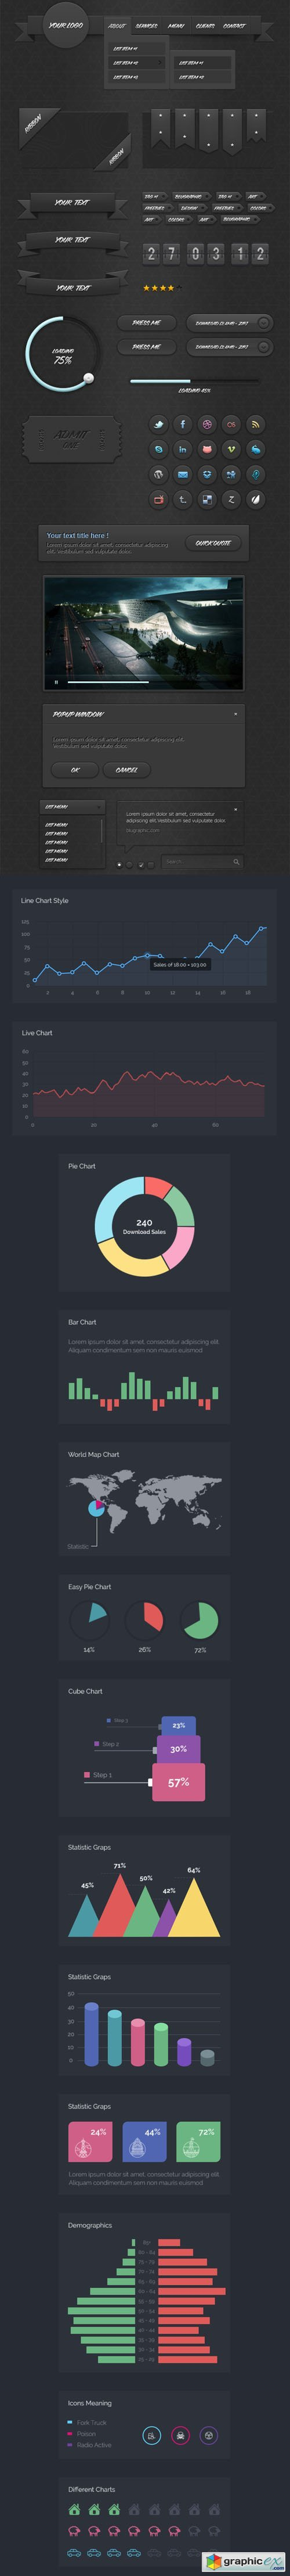 Dark Ui Kit v1.0 + Infographic Kit